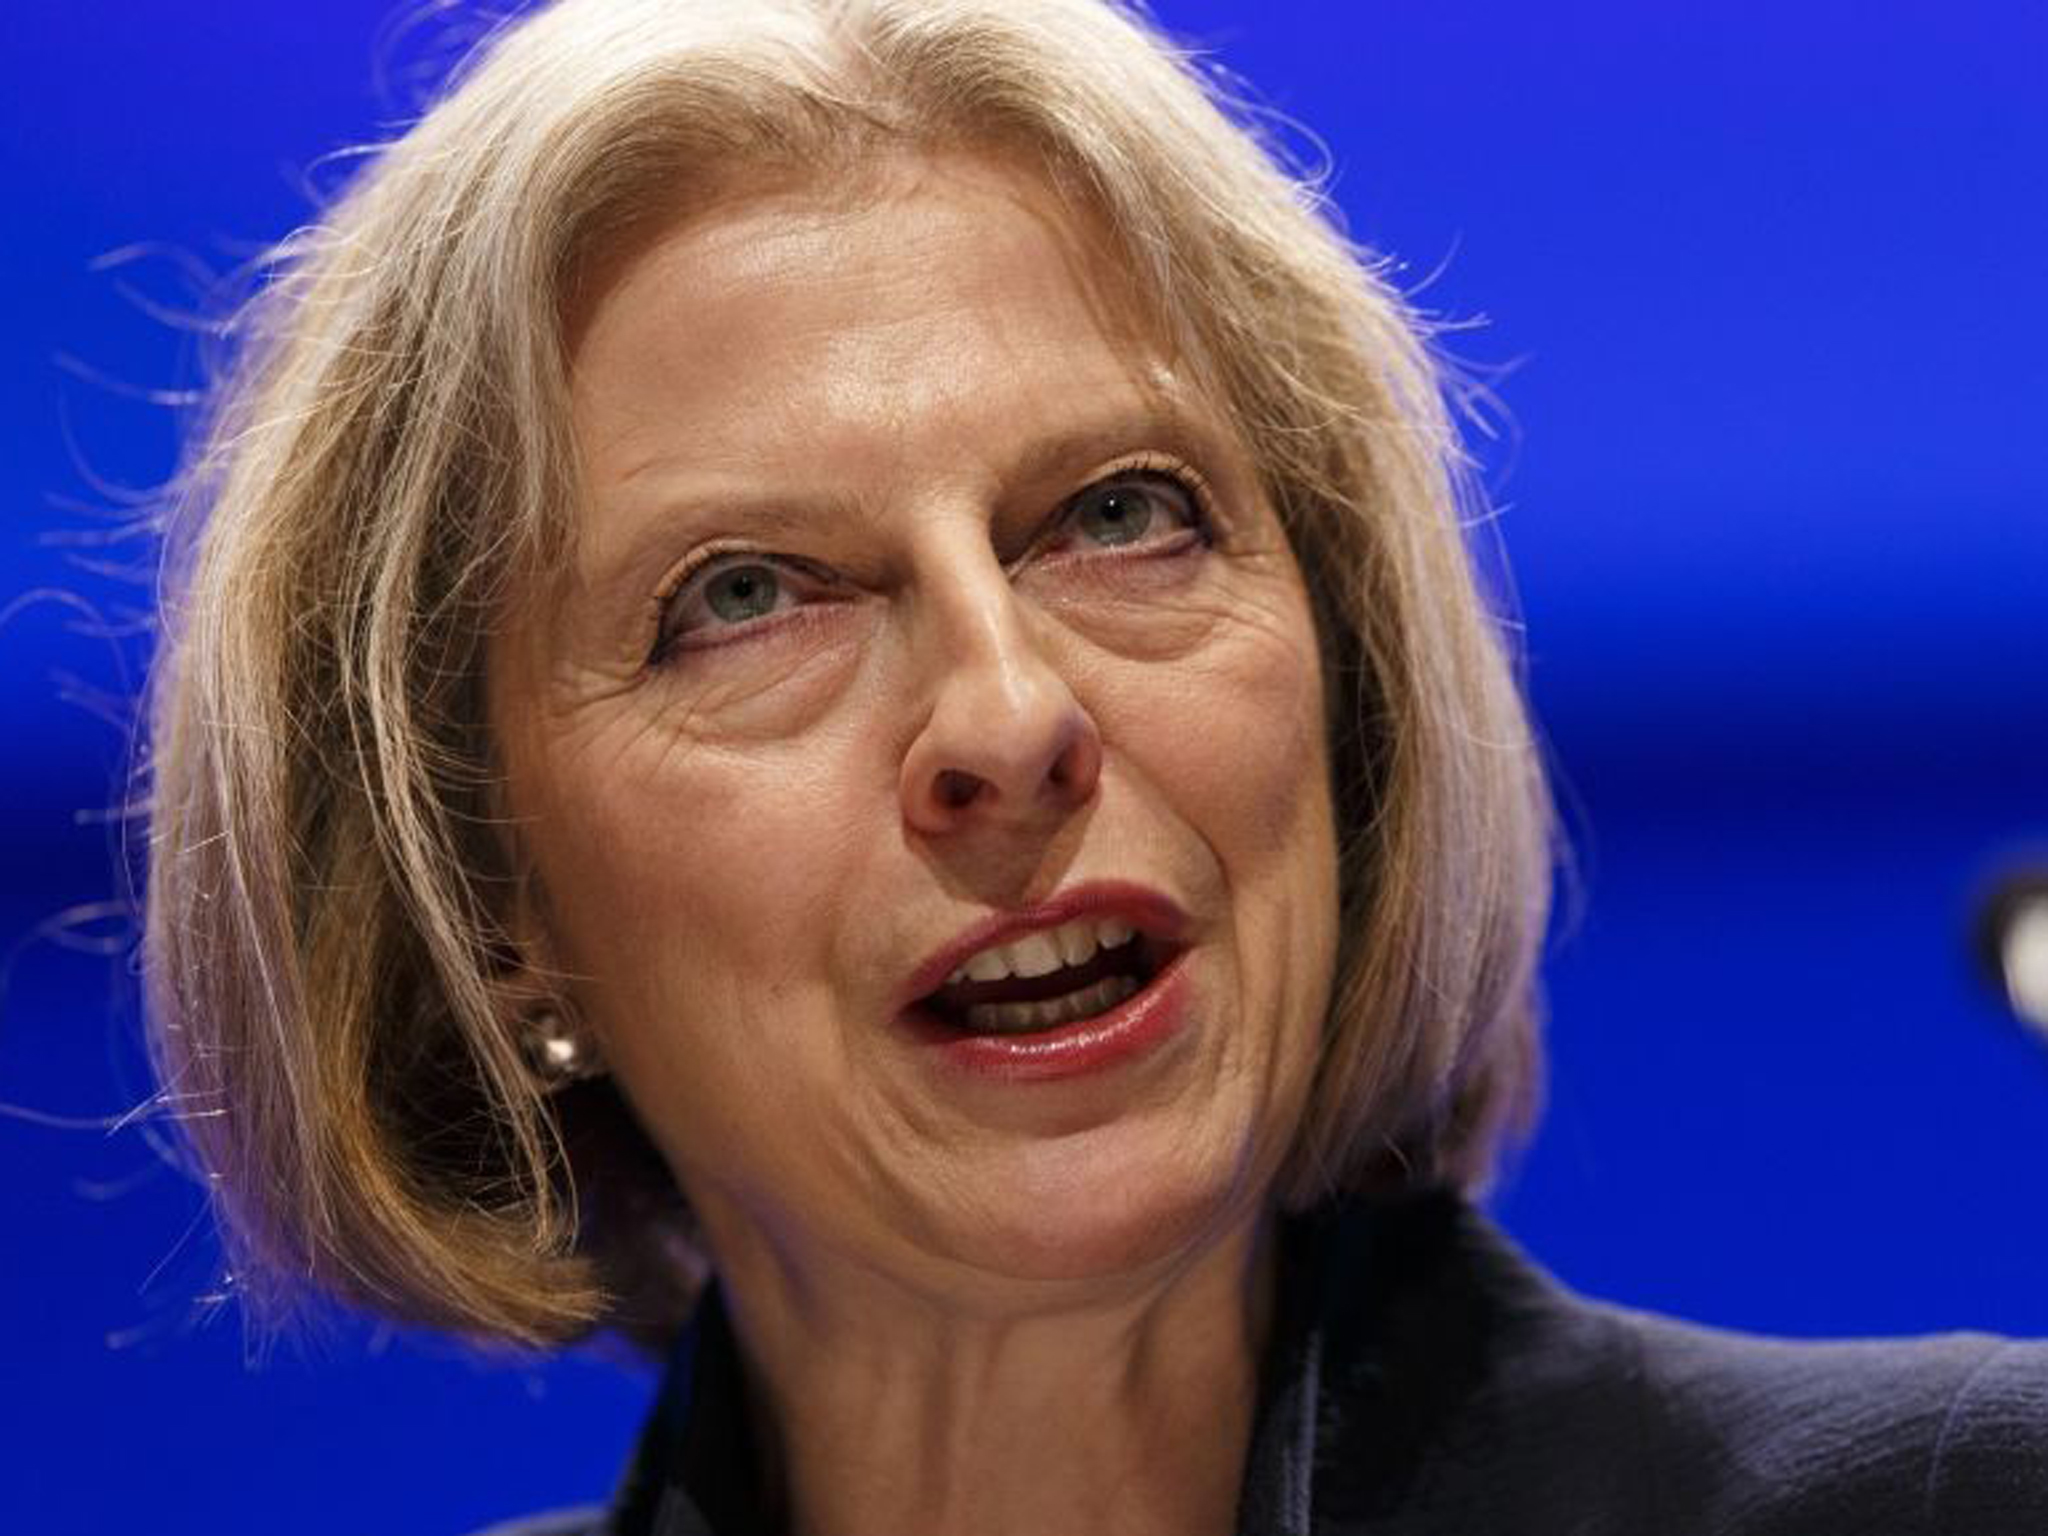 Theresa May refuses to attend the General Election